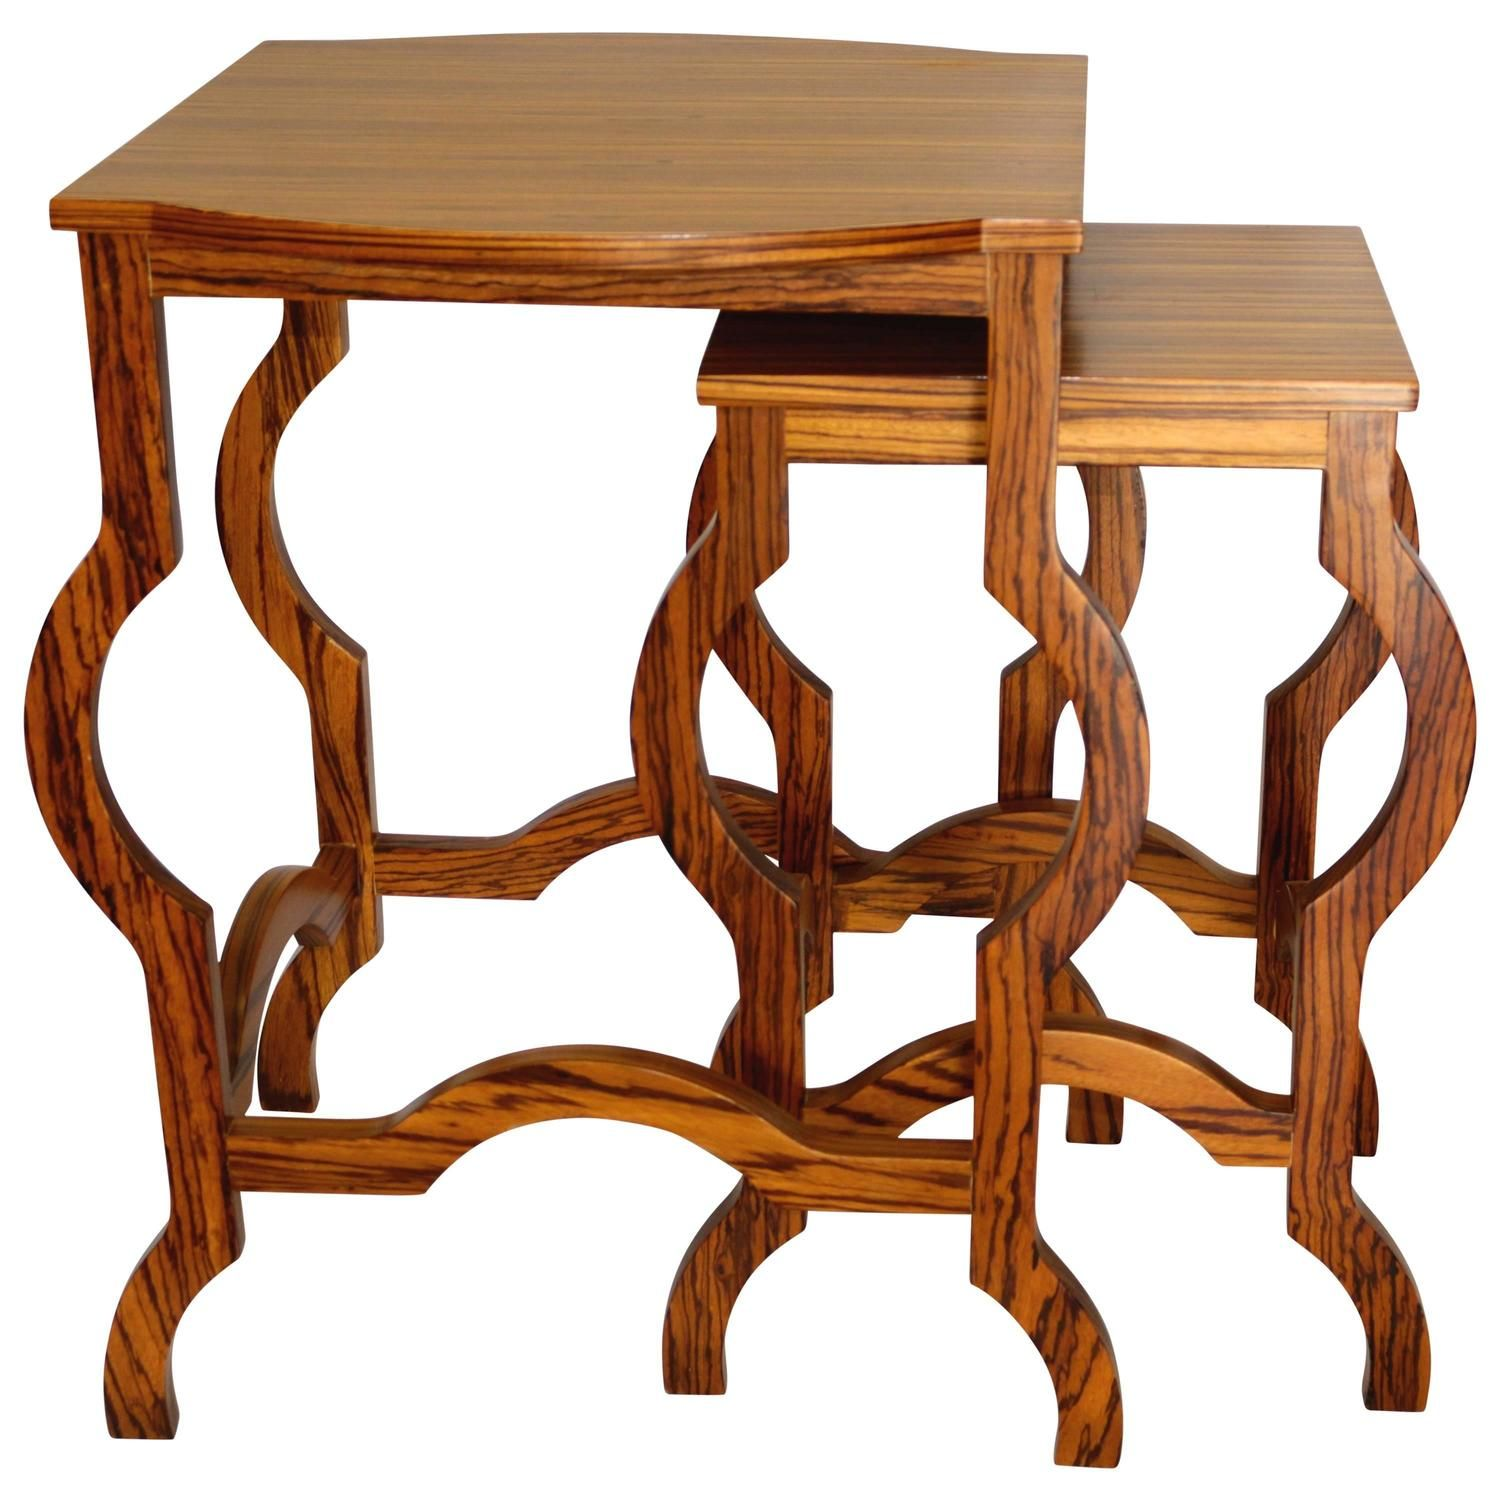 Our nest of table set comes with sleek design and elegant